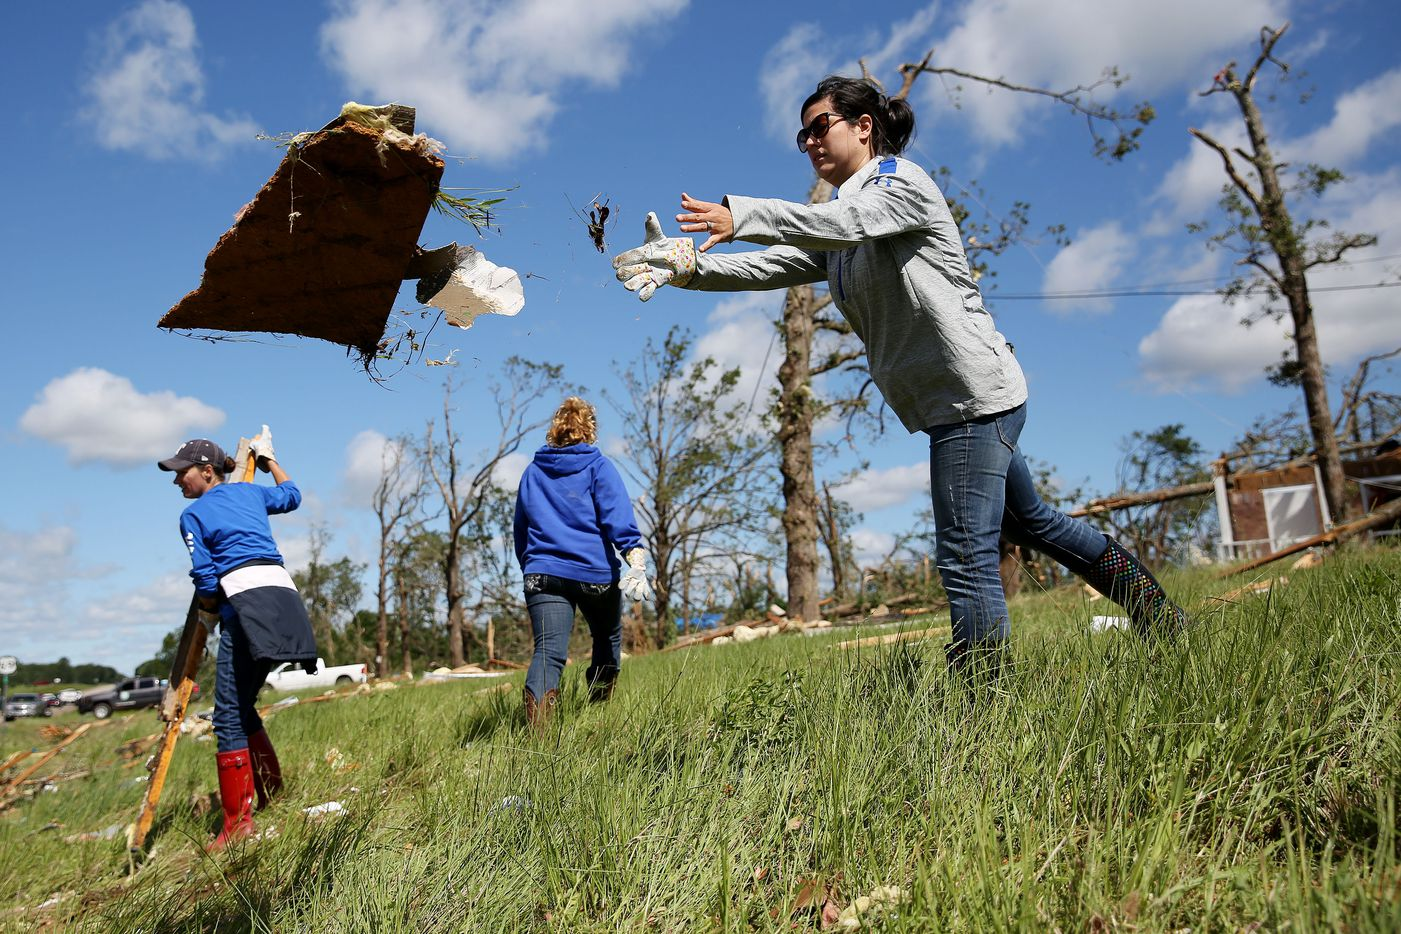 Sarah Jones, an Emory ISD teacher, helps to clean up debris along US-69 after a tornado impacted Emory, Texas on Sunday April 30, 2017.